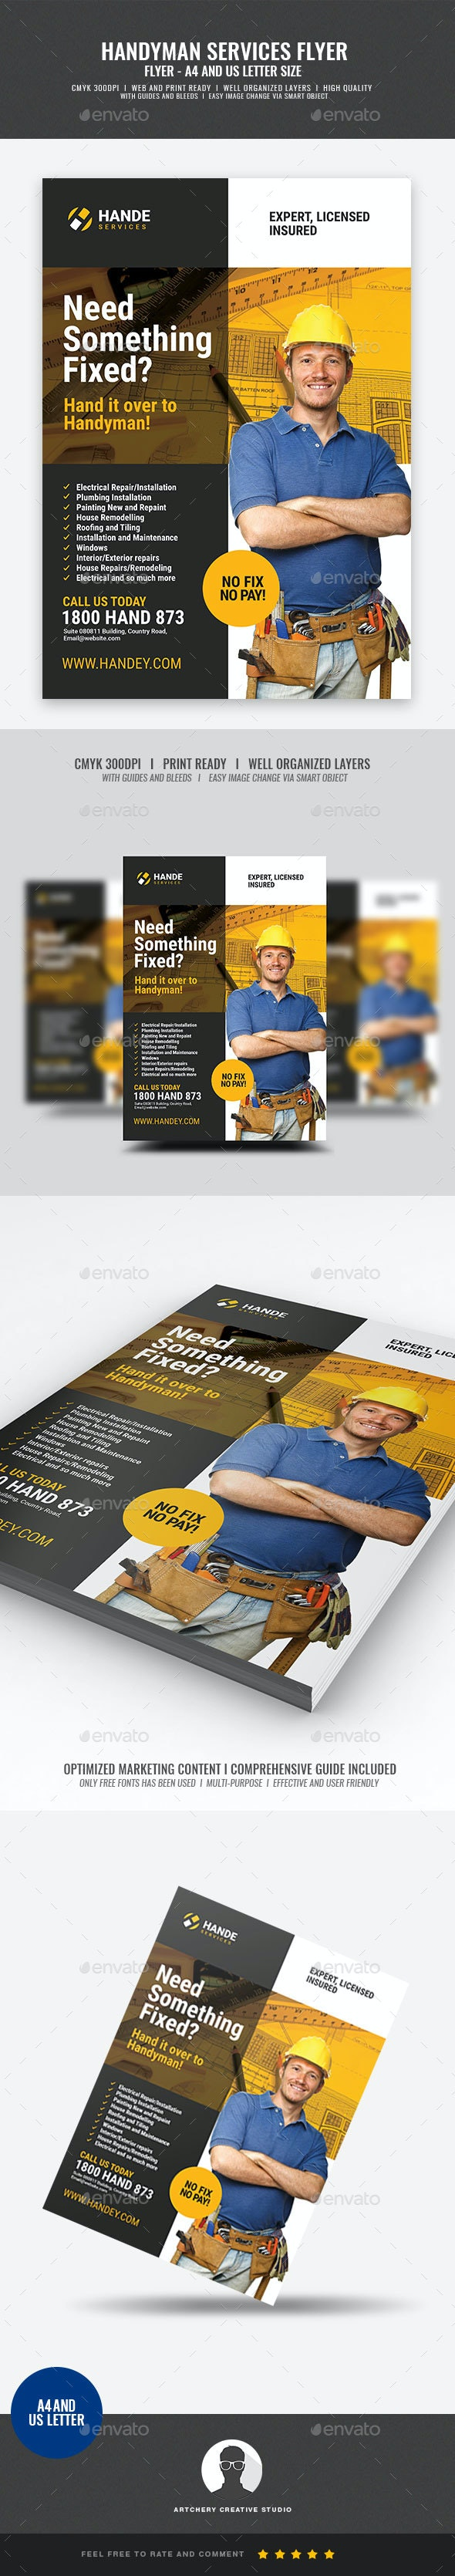 Handyman Services Flyer - Corporate Flyers